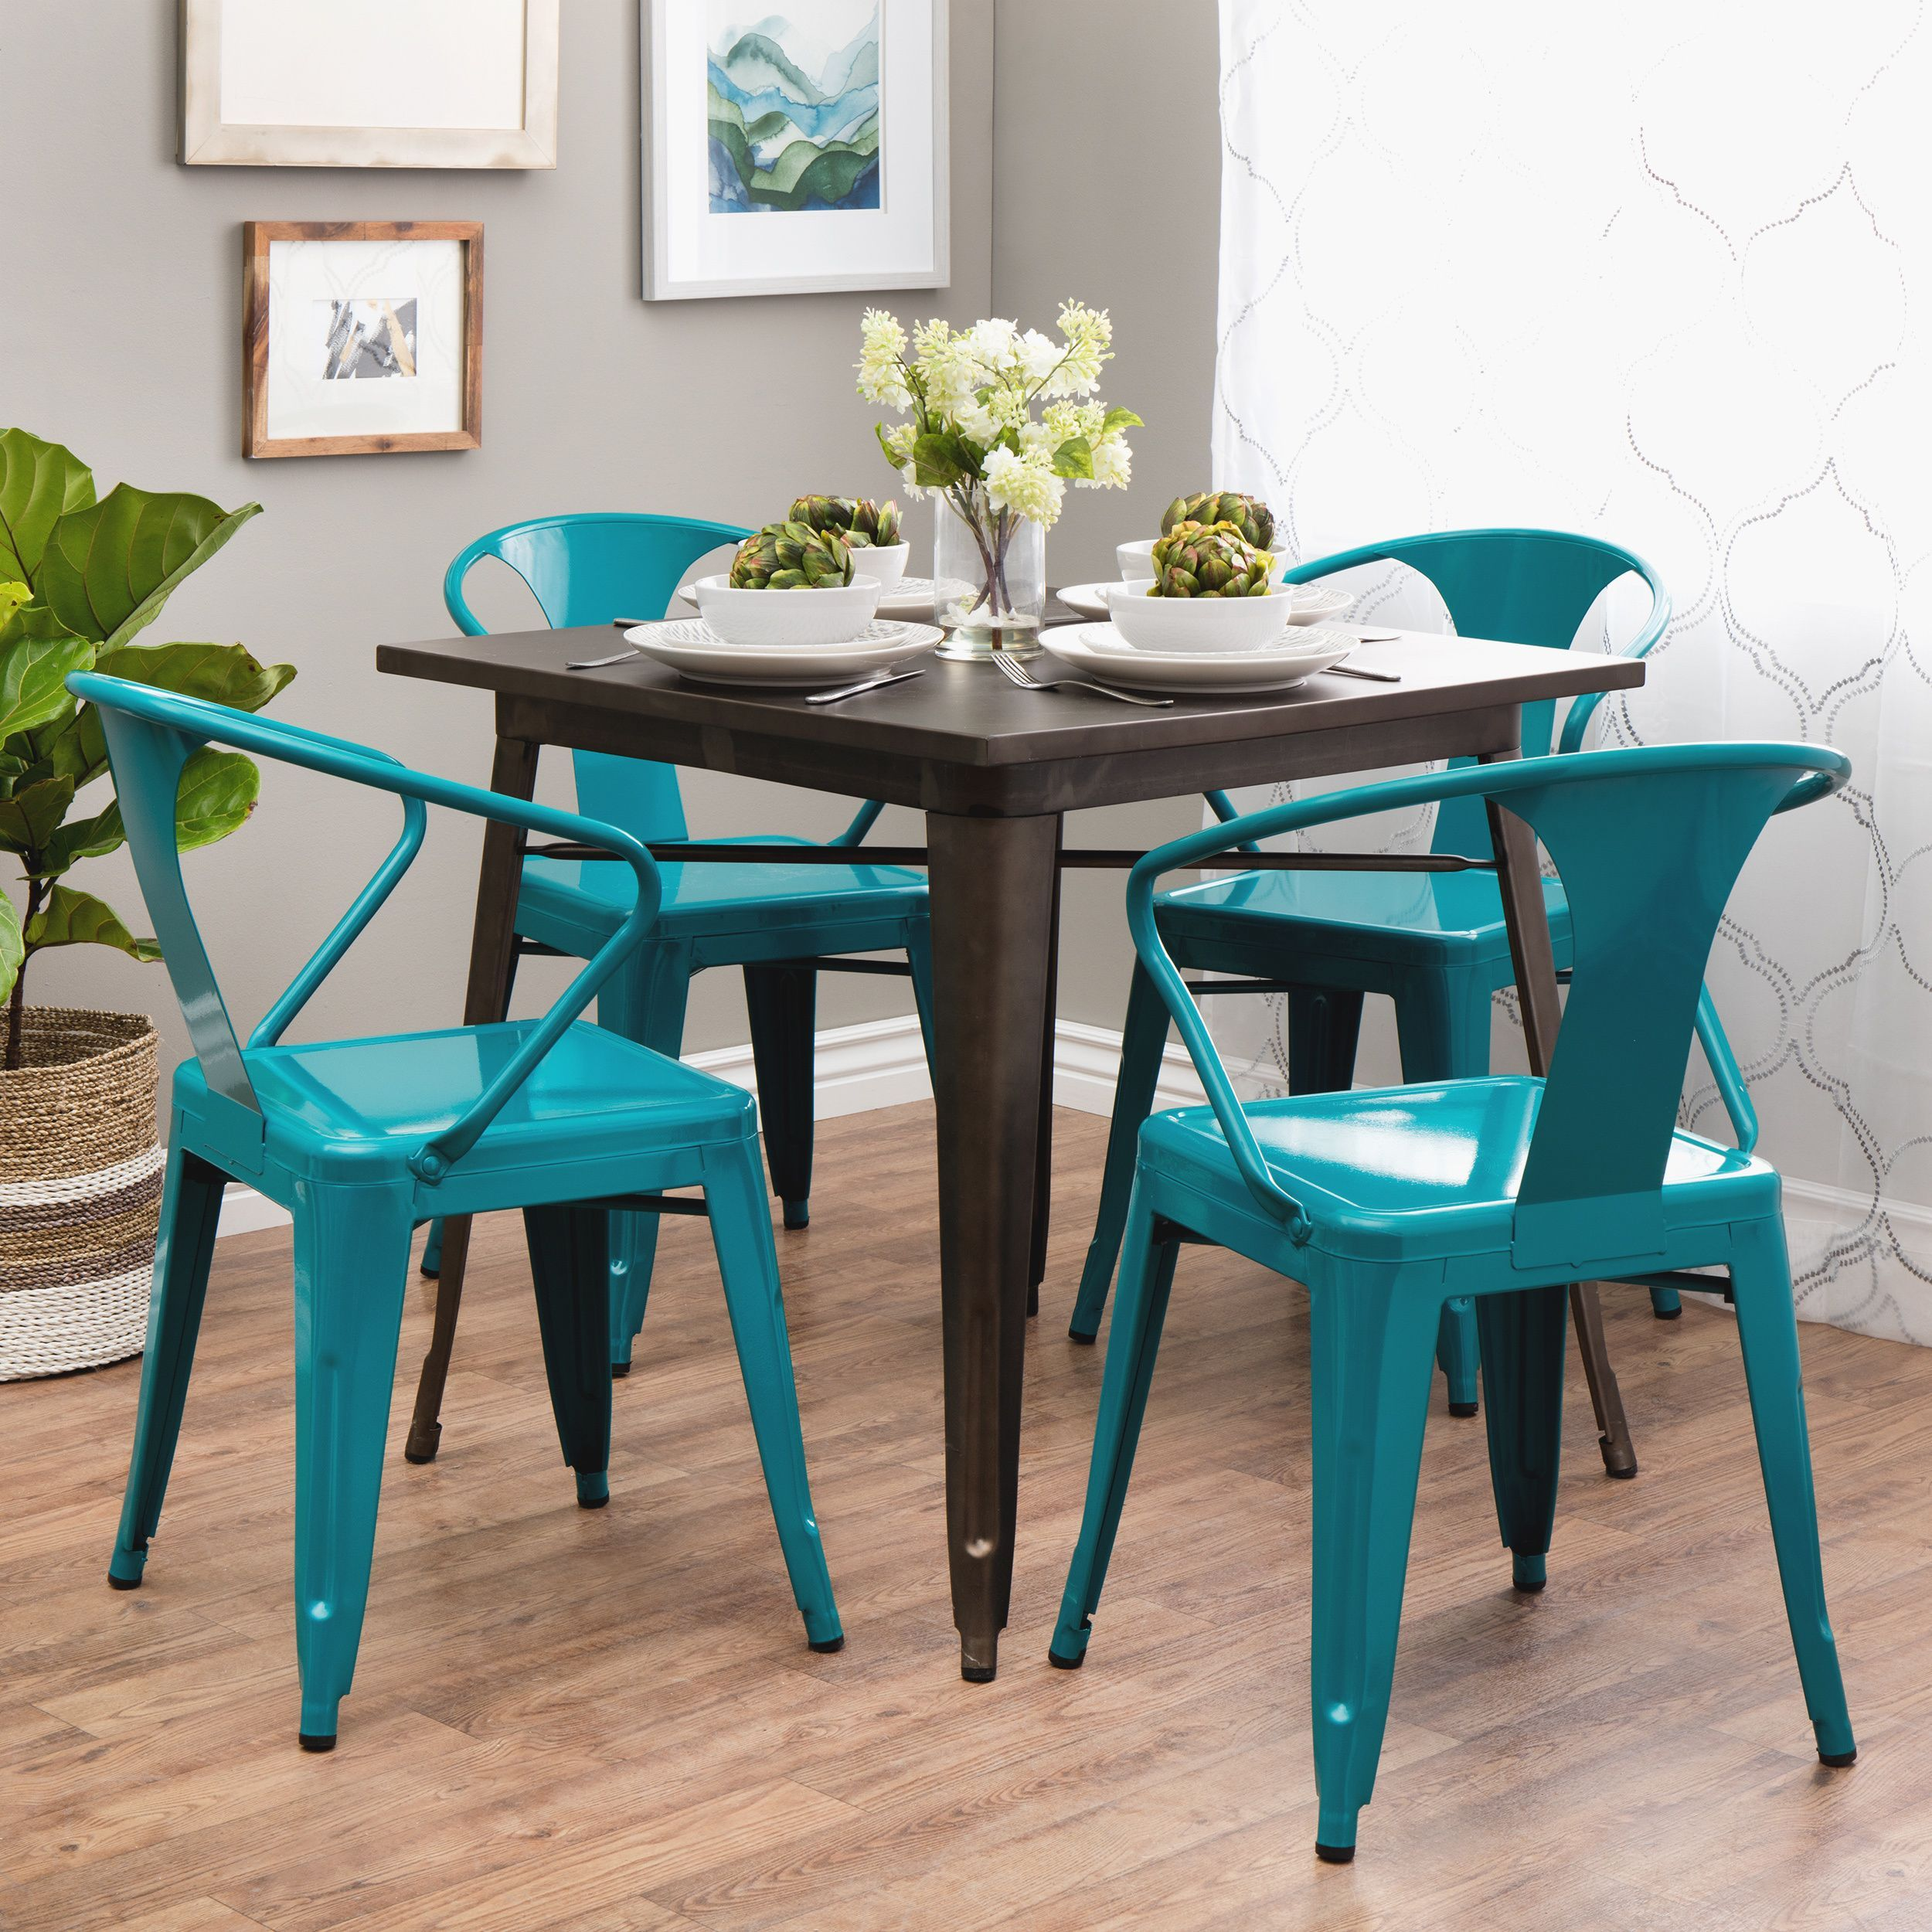 stylish stacking chairs in a fun peackock blue - Tabouret chairs ...